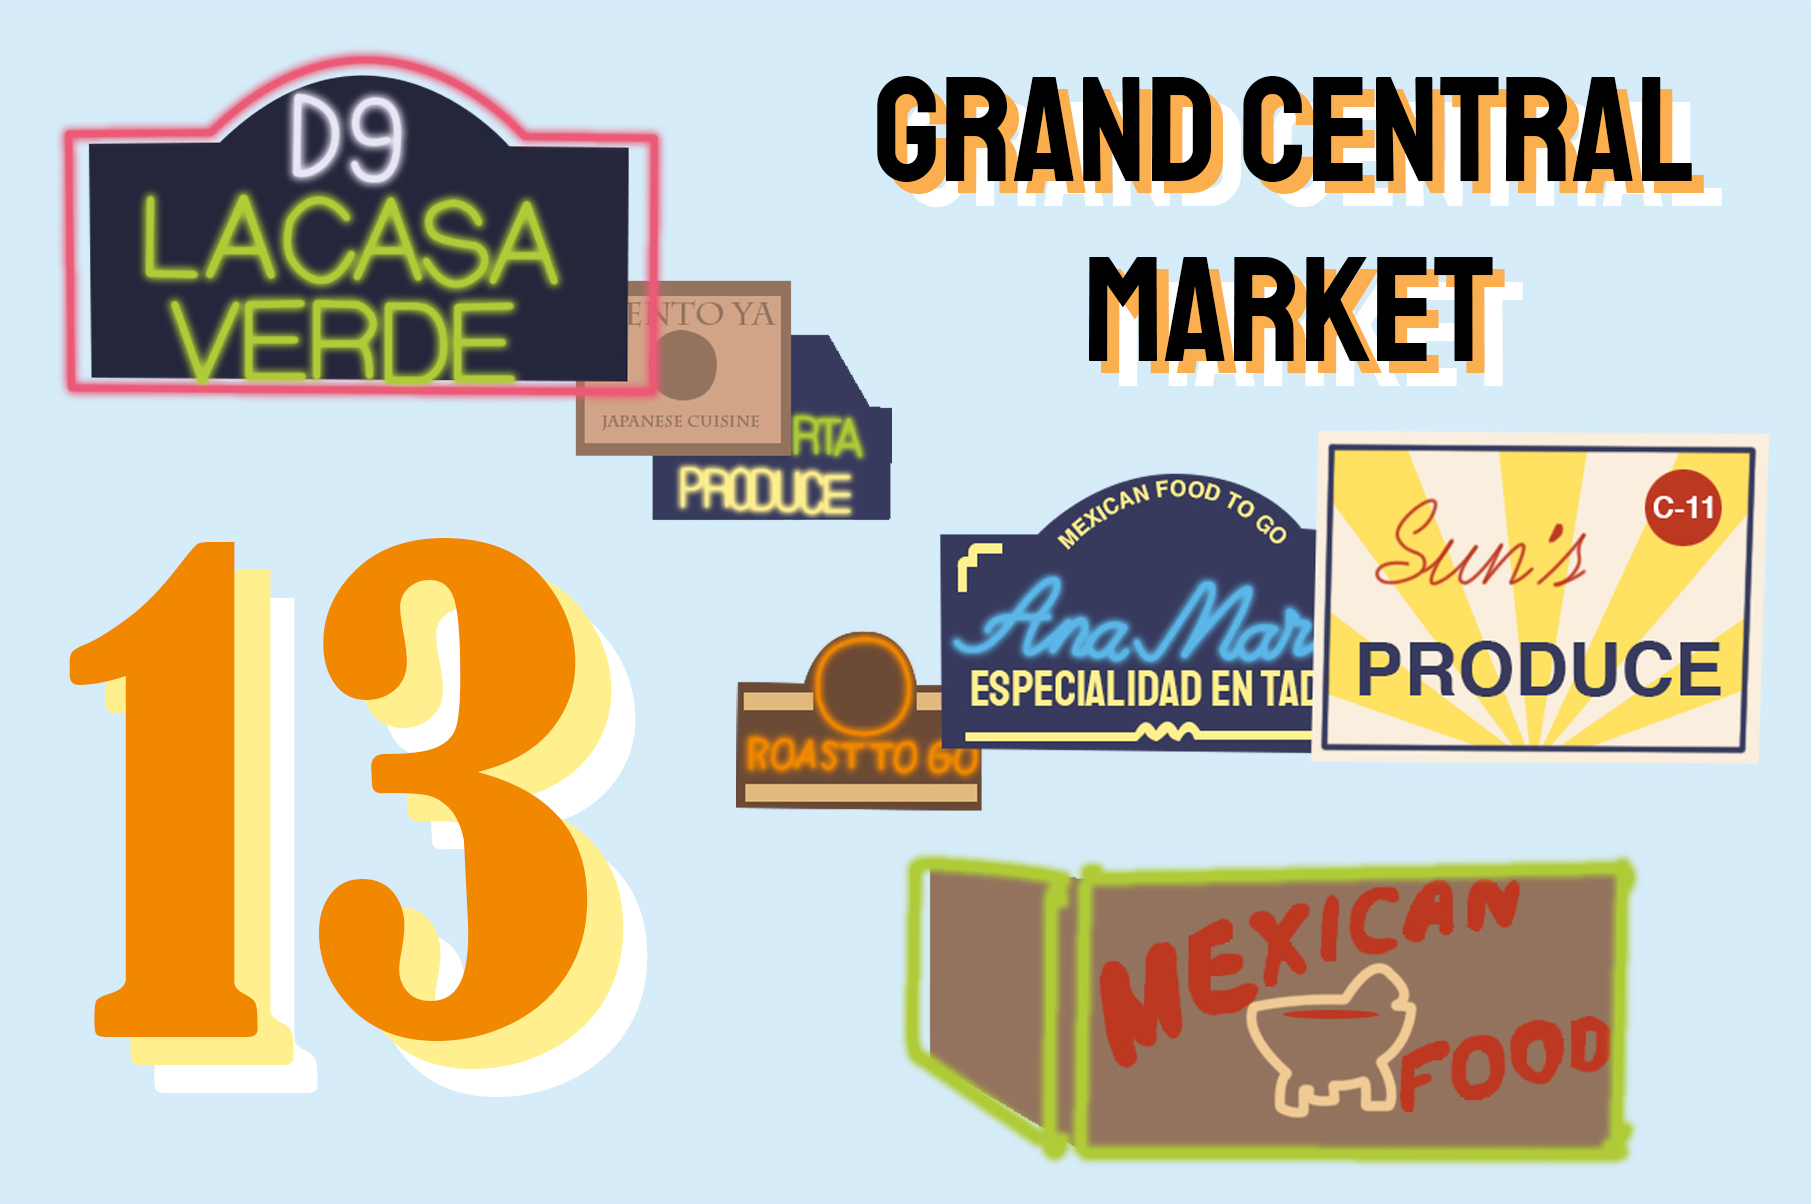 Grand Central Market (Commission)